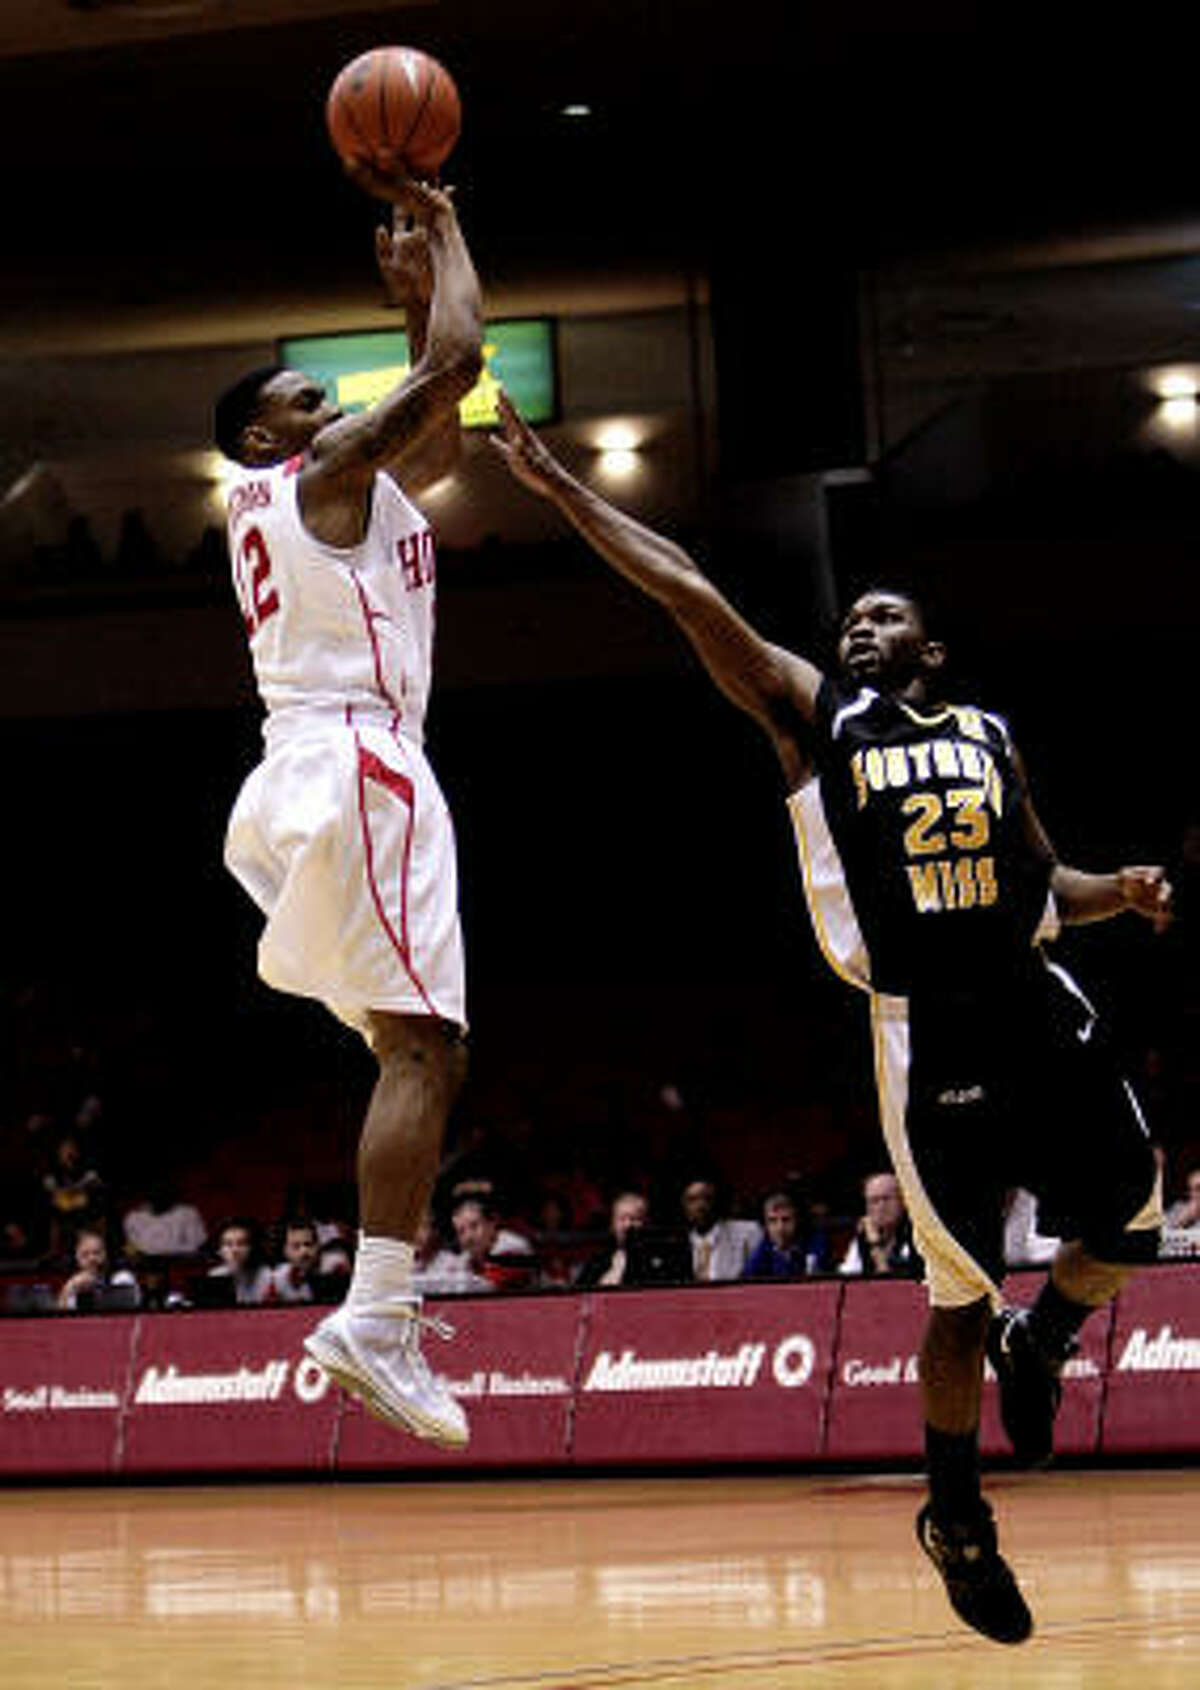 UH guard Aubrey Coleman, left, scored a game-high 24 points against Southern Miss, but he needed 24 shots to reach that. The Cougars lost 57-55 Saturday at Hofheinz Pavilion.